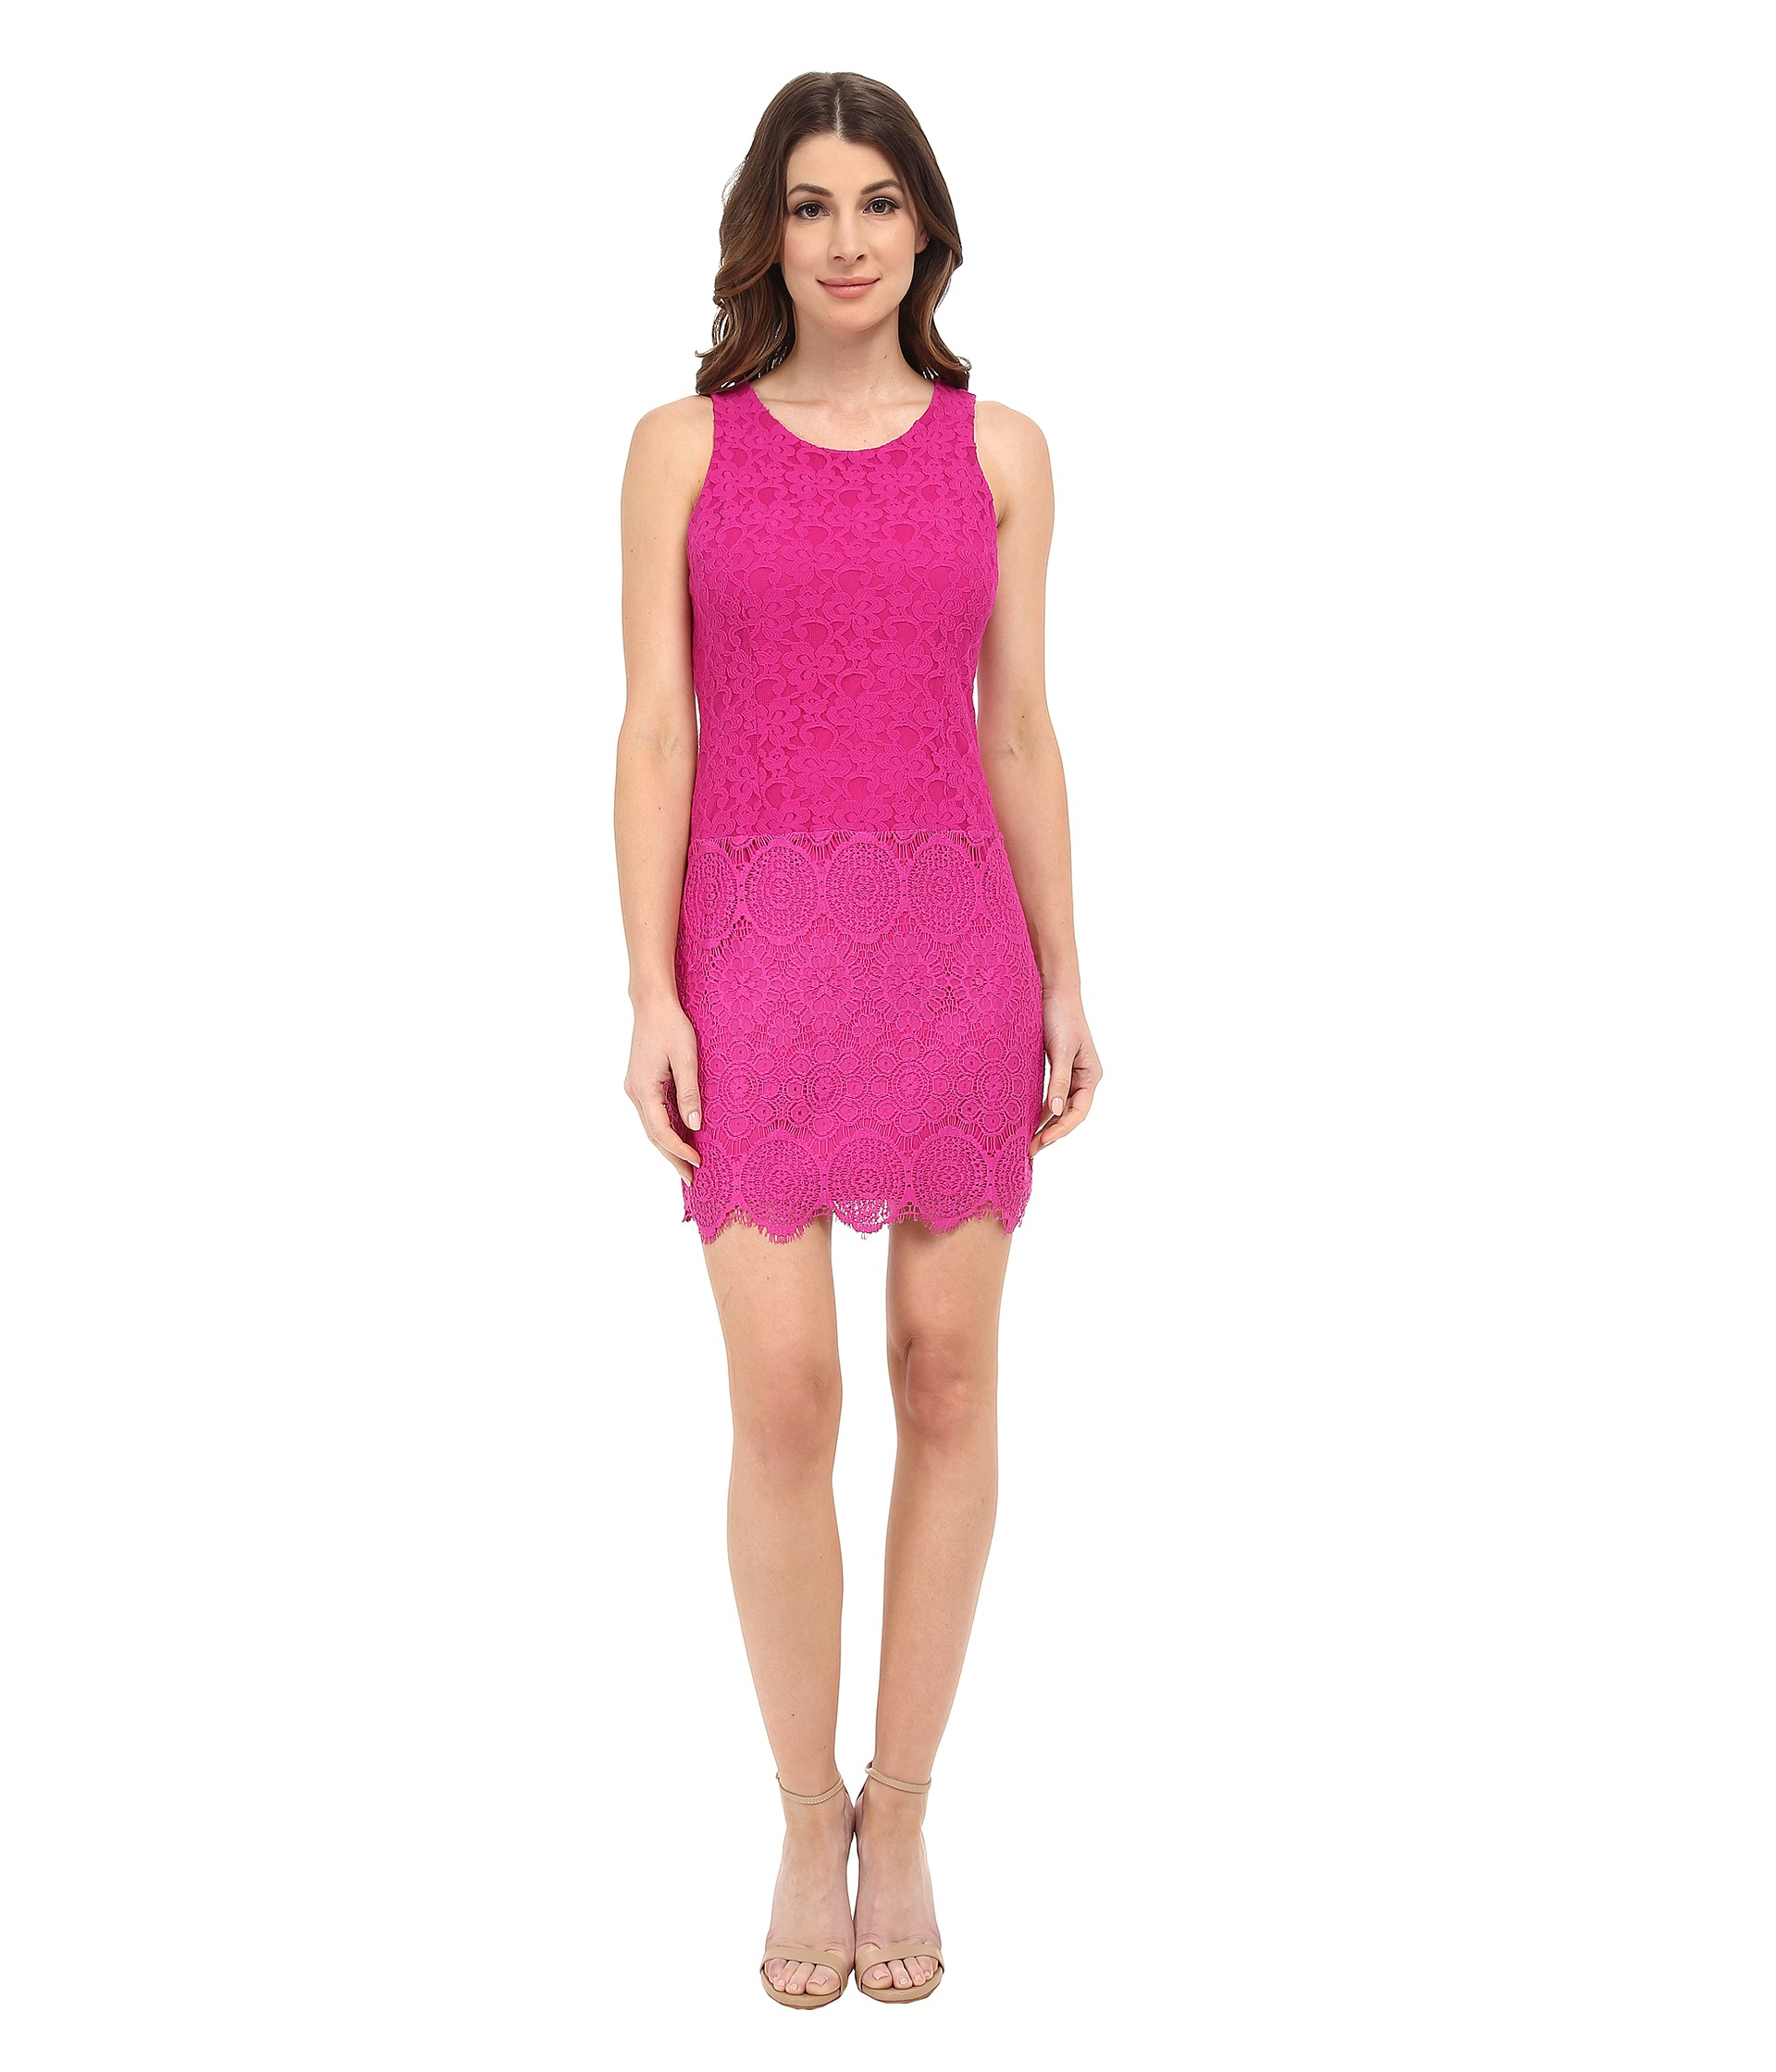 2067da89 Laundry by Shelli Segal Susanna Stretch Lace Sleeveless Dress in ...